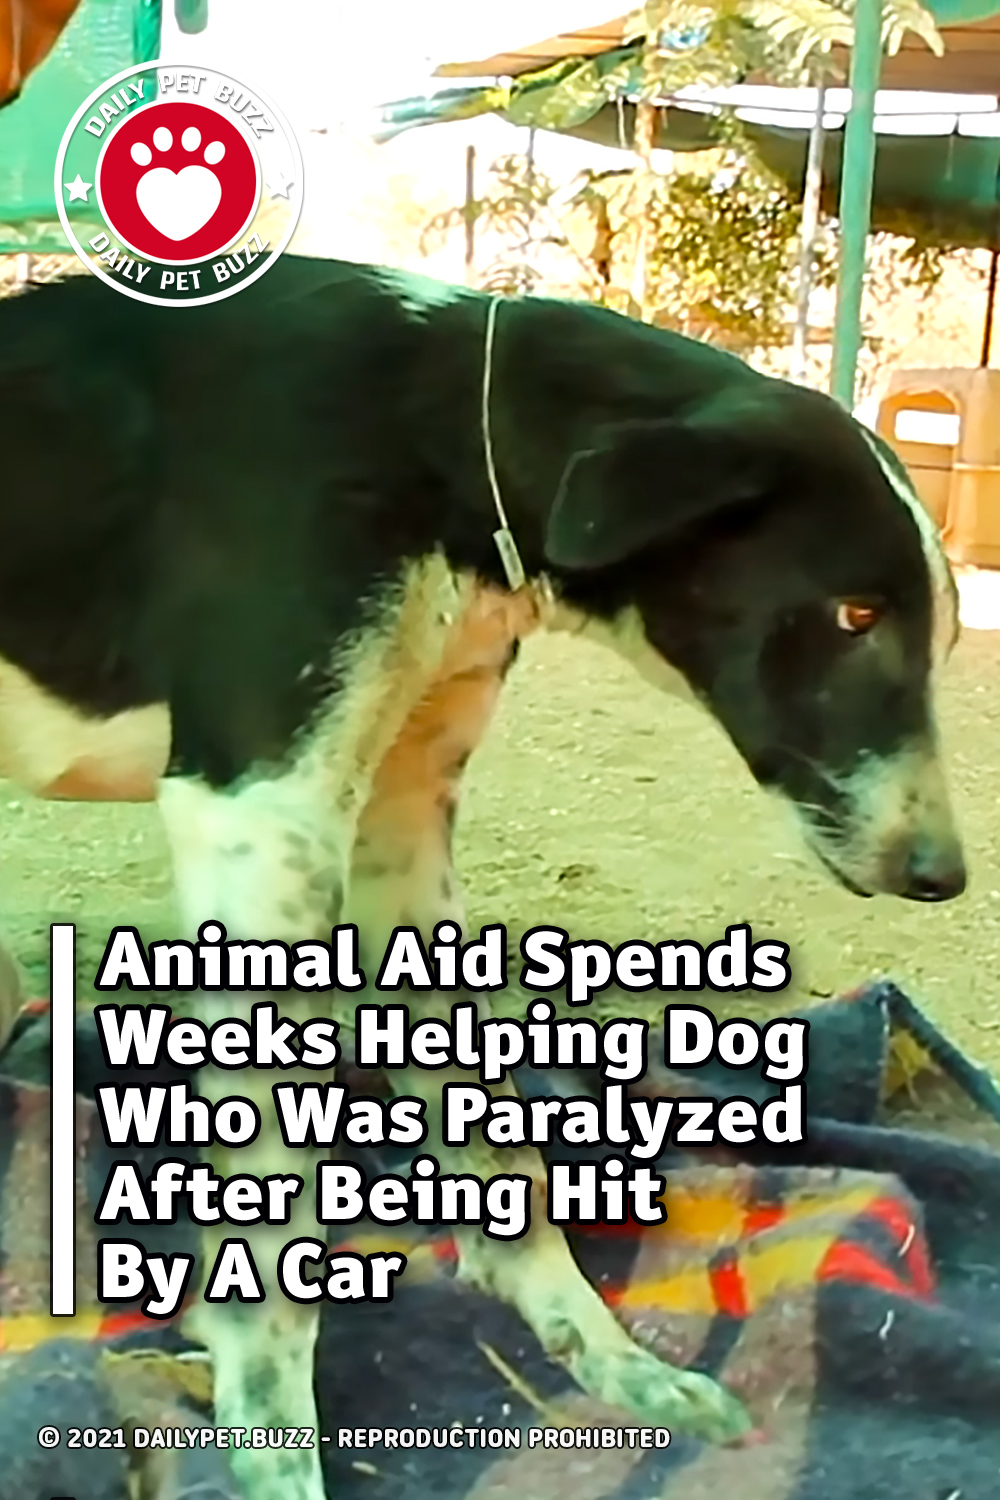 Animal Aid Spends Weeks Helping Dog Who Was Paralyzed After Being Hit By A Car